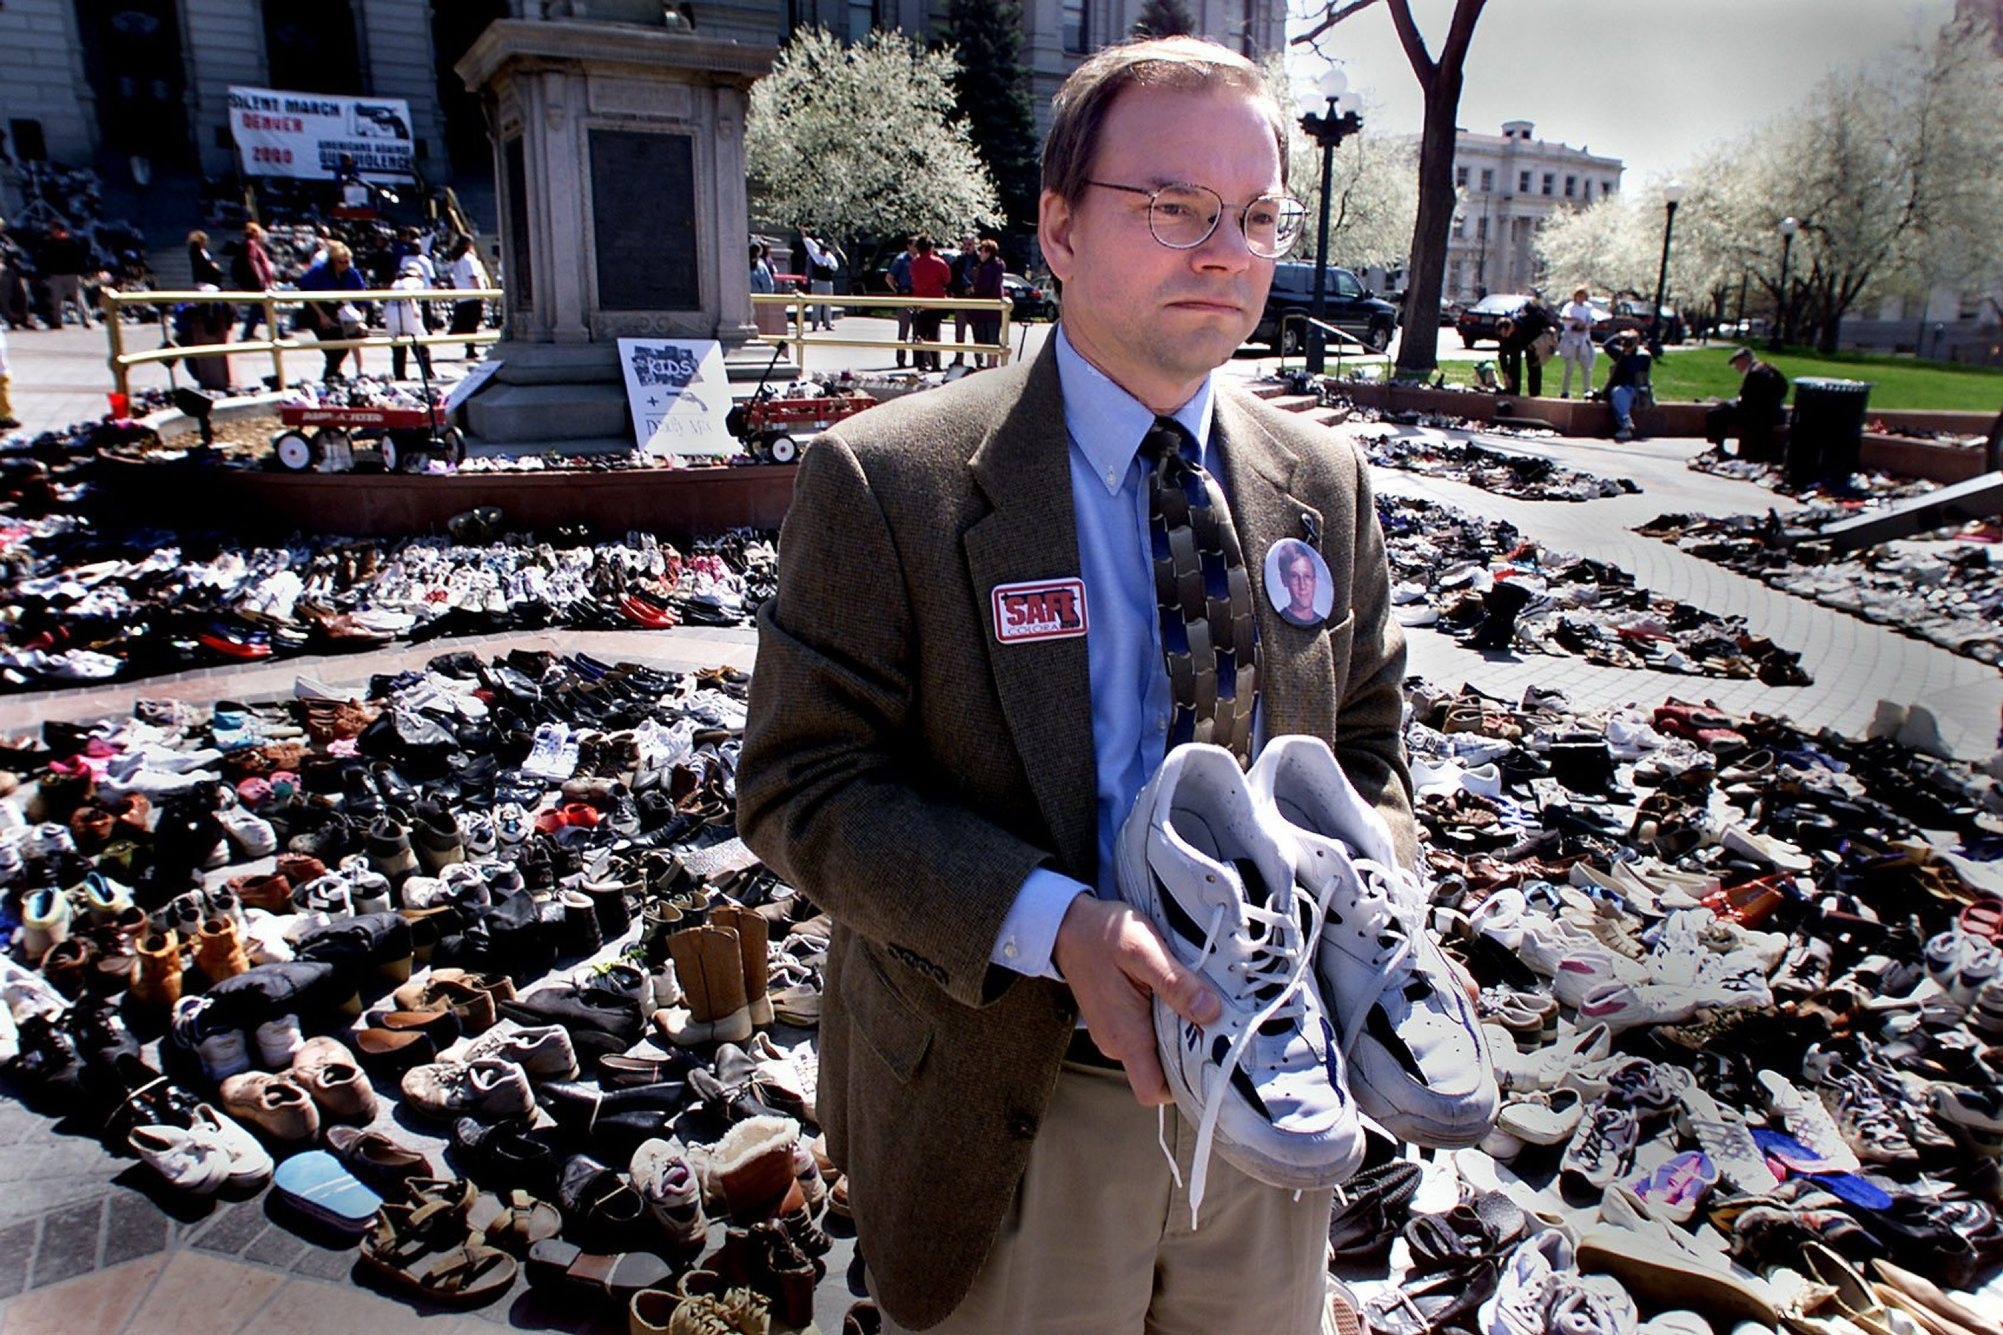 Thomas Mauser, shown holding the shoes of his son, Daniel, who was killed in the school shooting in Columbine, Colo., is hit hard whenever he hears of another mass shooting.